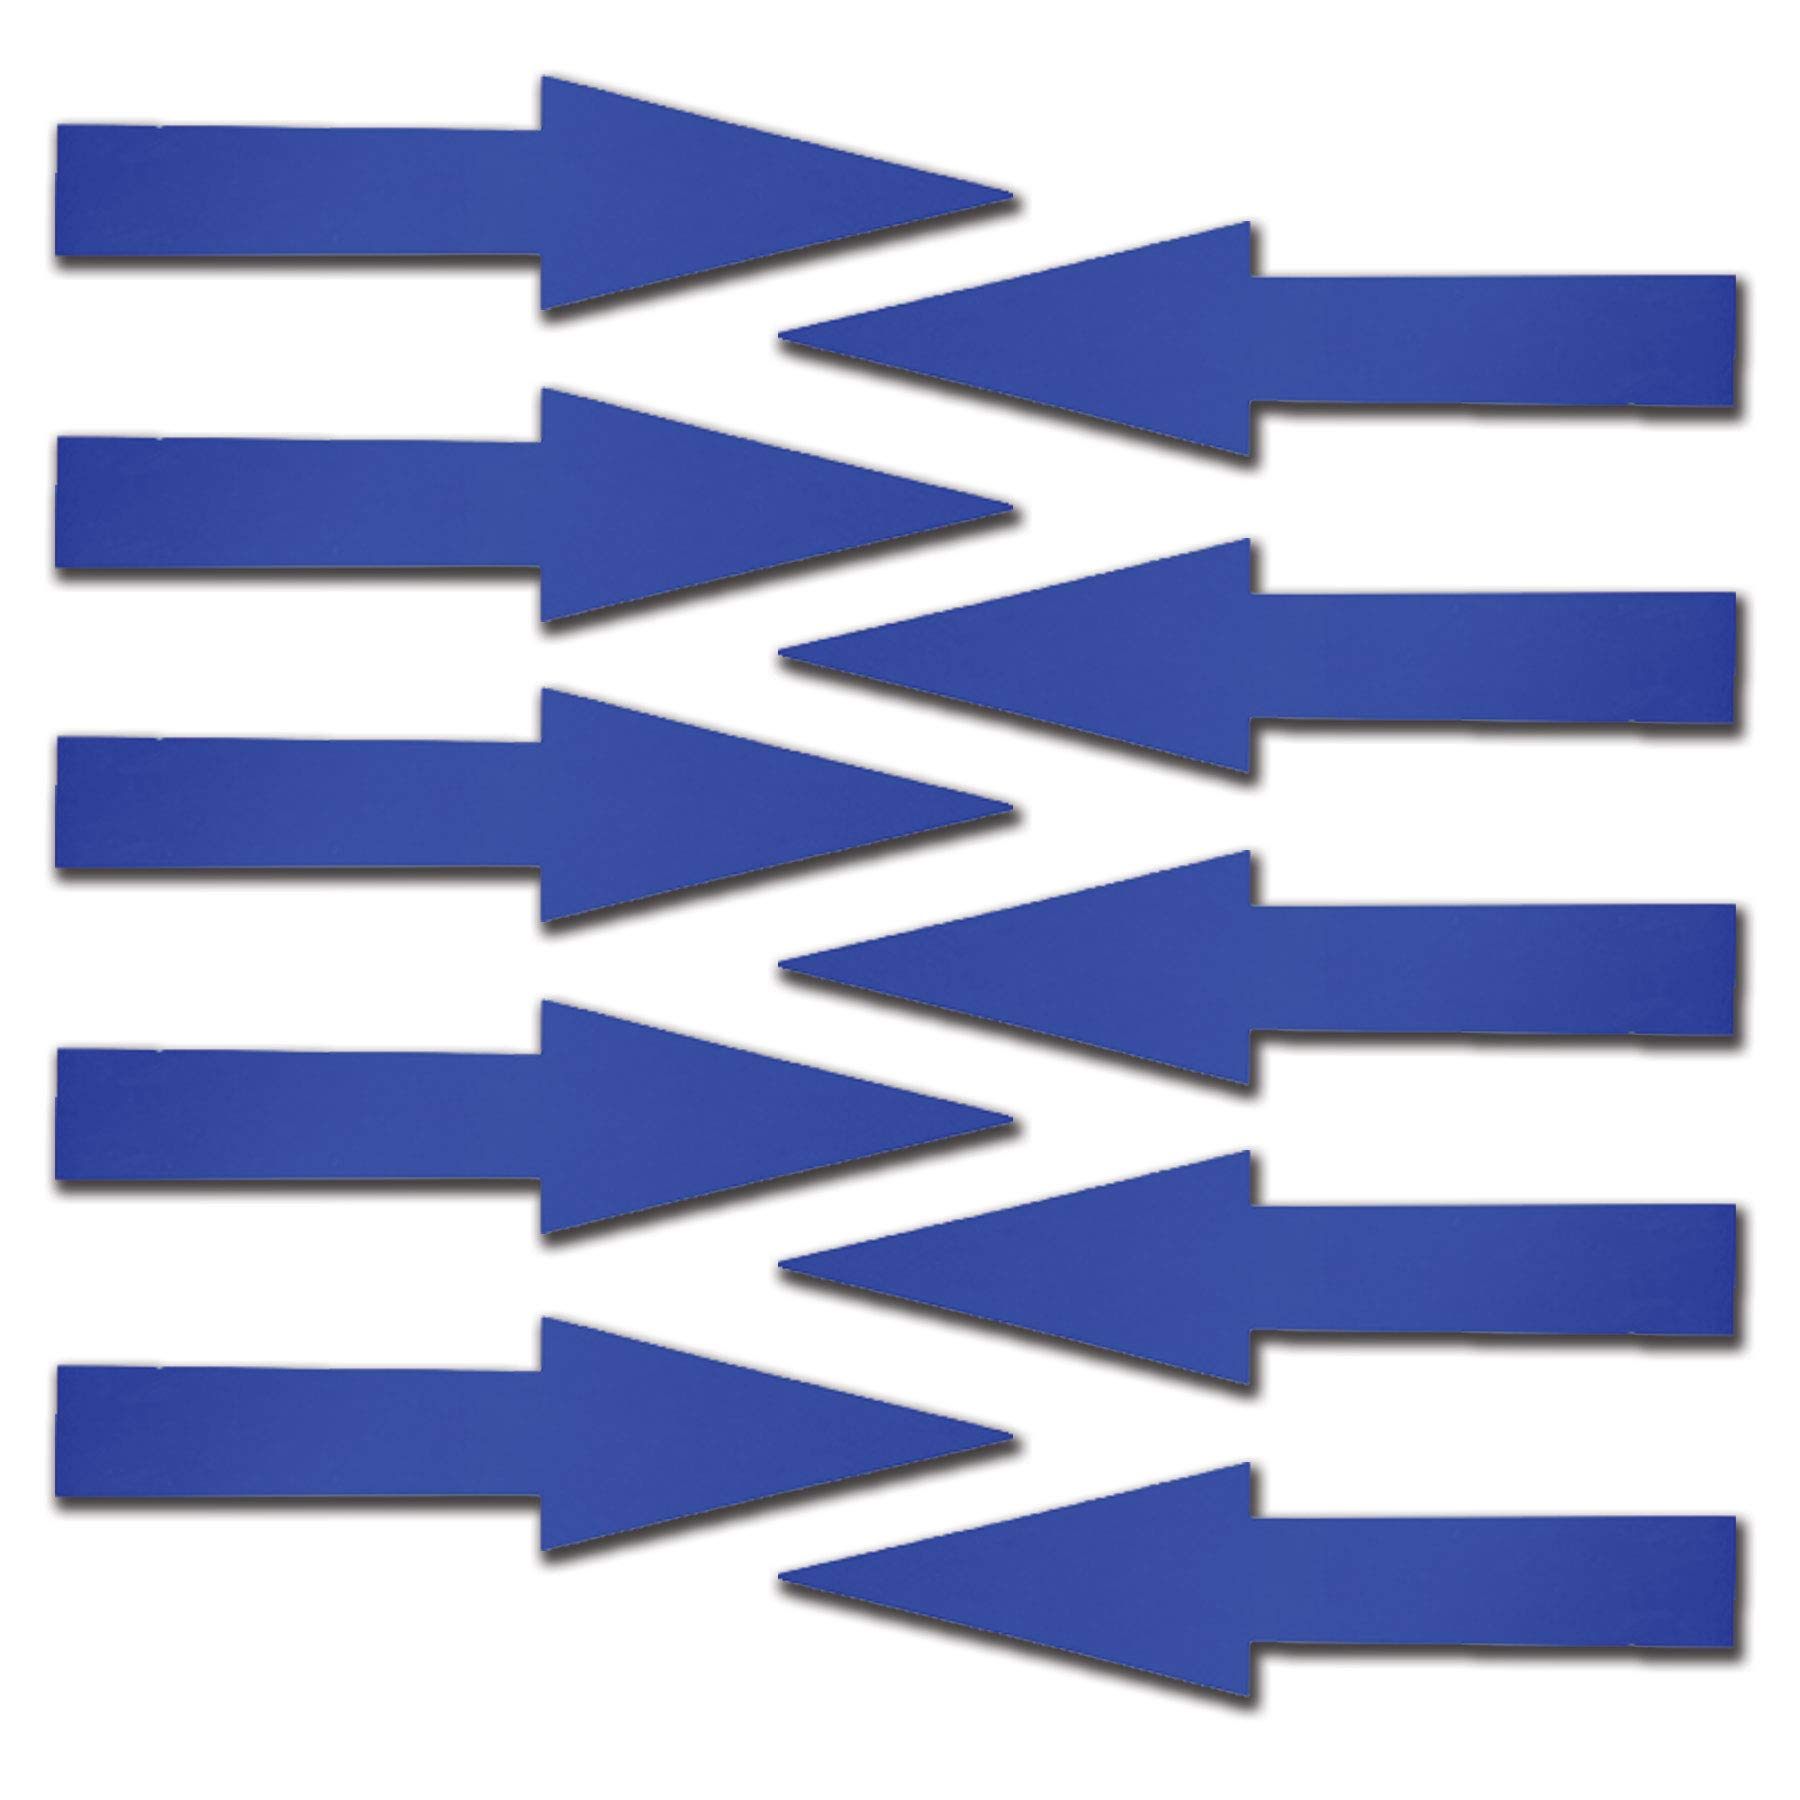 Visibility Signage Experts 11 Inch Blue Glossy Arrow Decal Sticker Store Sign - Blue - Pack of 10